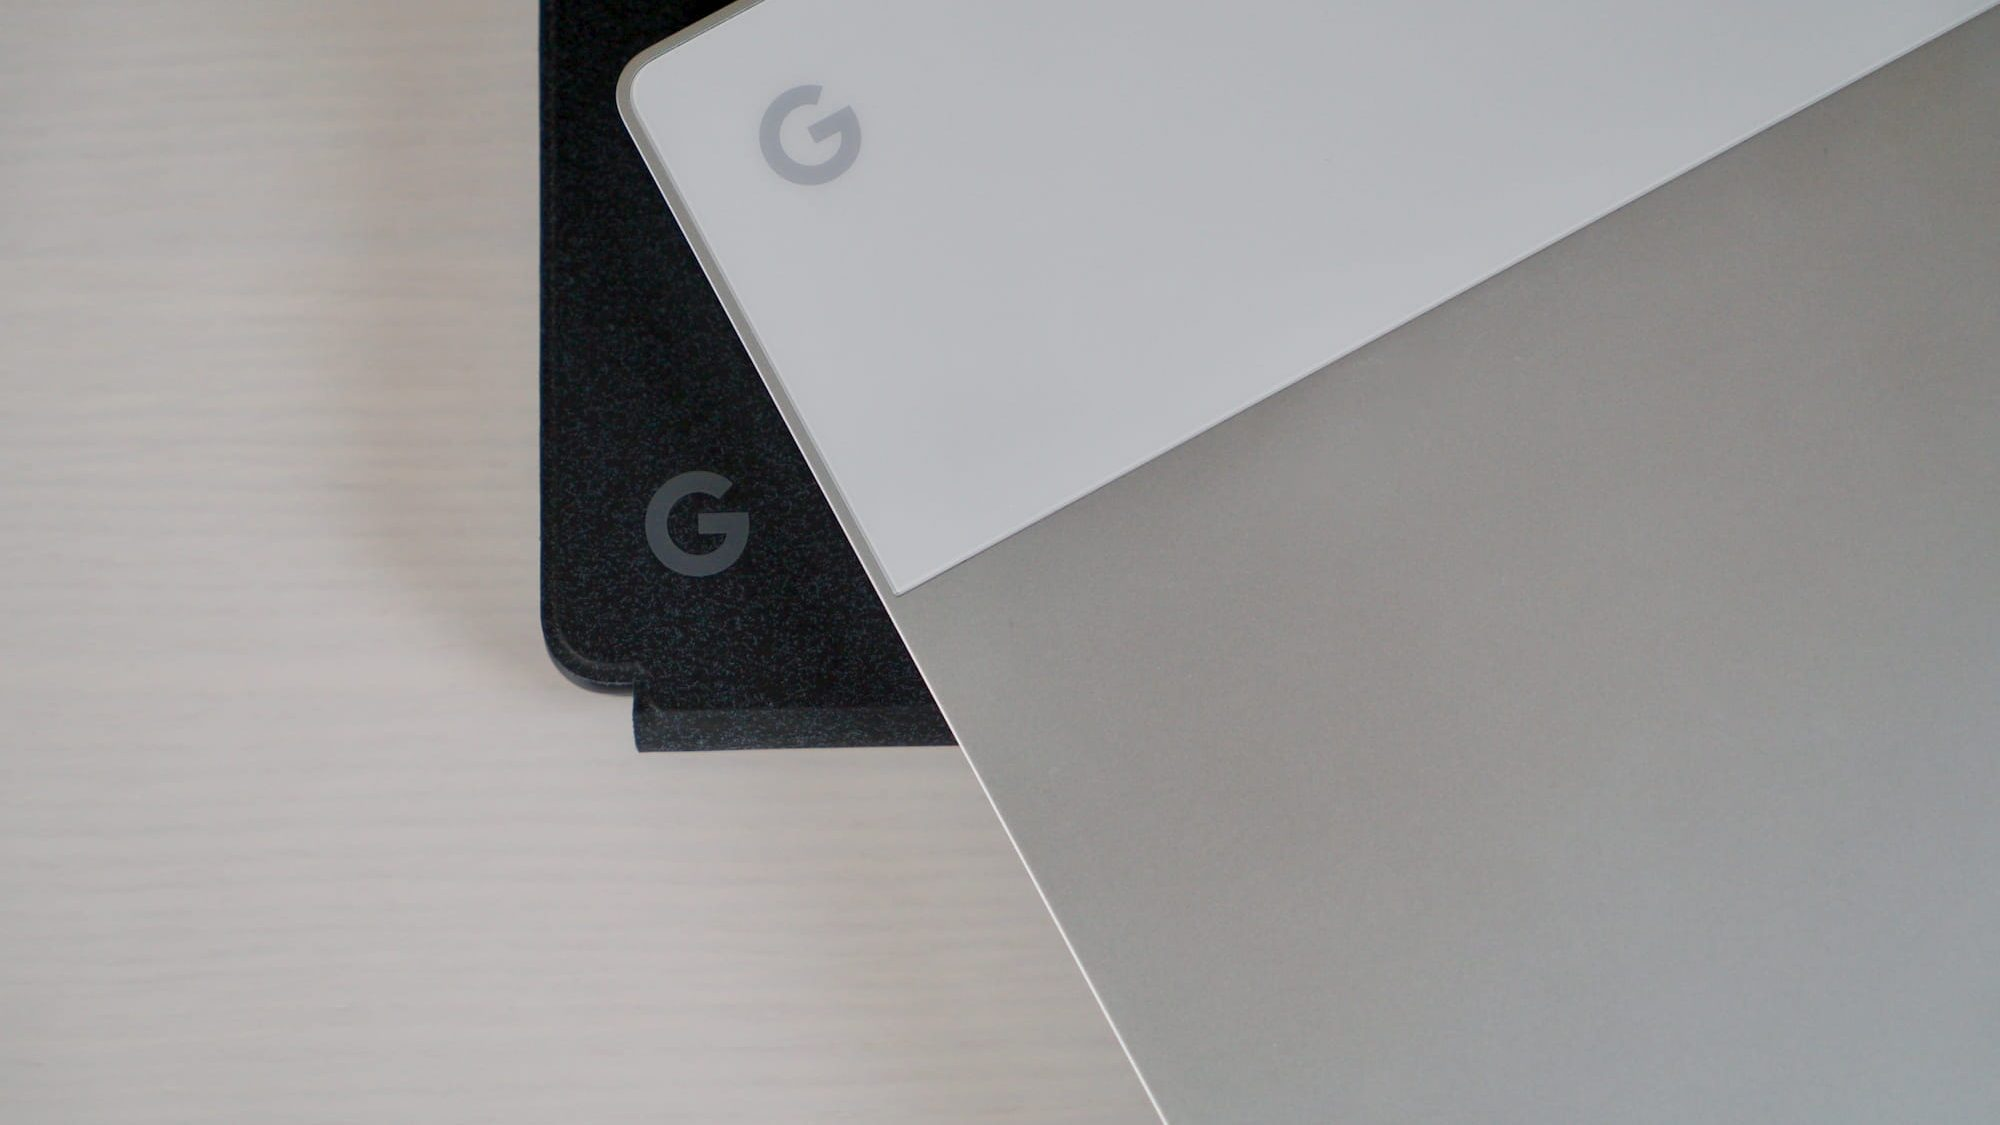 What a Pixelbook with Google's Pixel 4a approach to hardware could look like